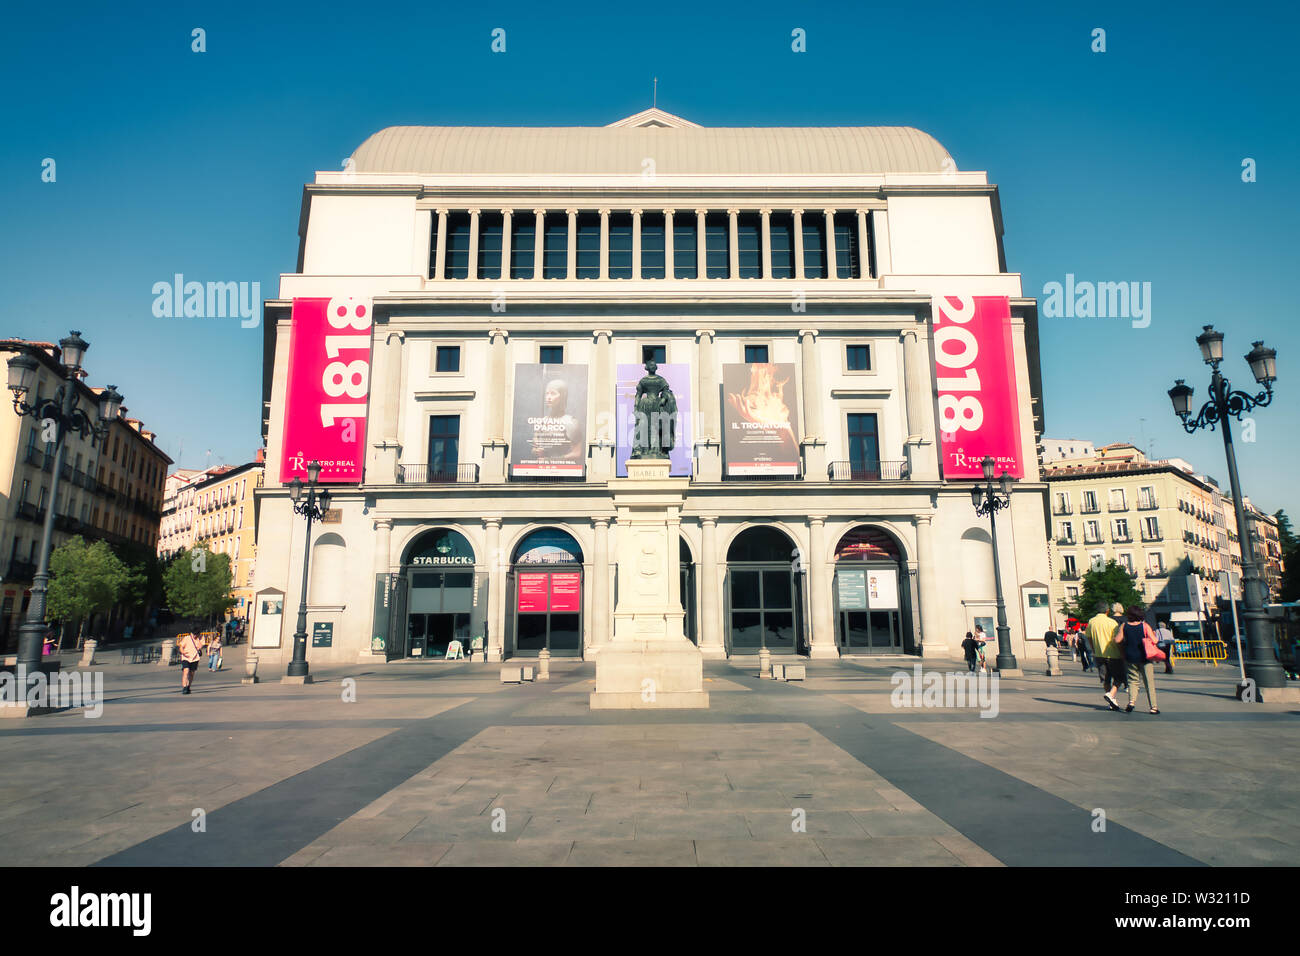 Madrid, Spain - June 21, 2019: Teatro Real (Royal Theatre) or simply El Real, as it is known colloquially, is a major opera house located in Madrid. Stock Photo